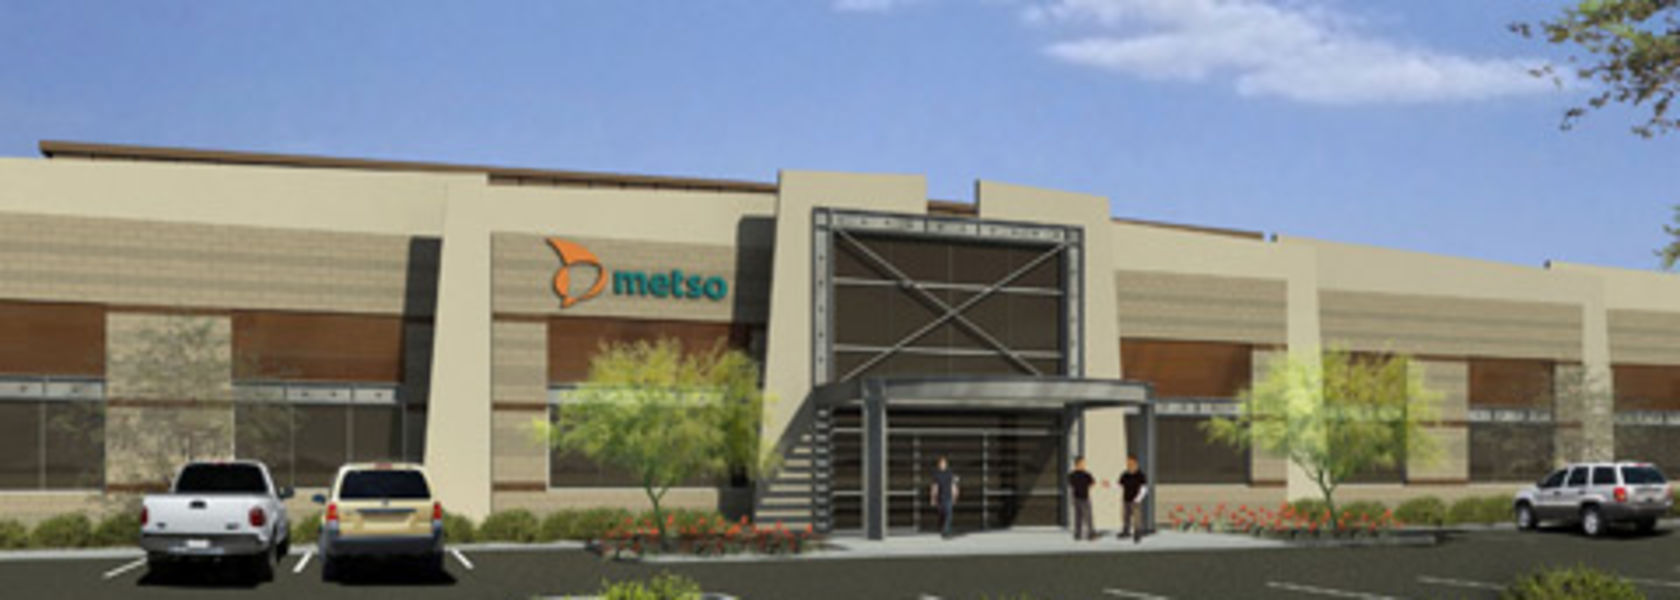 Metso expands global services centre network - Mining Magazine